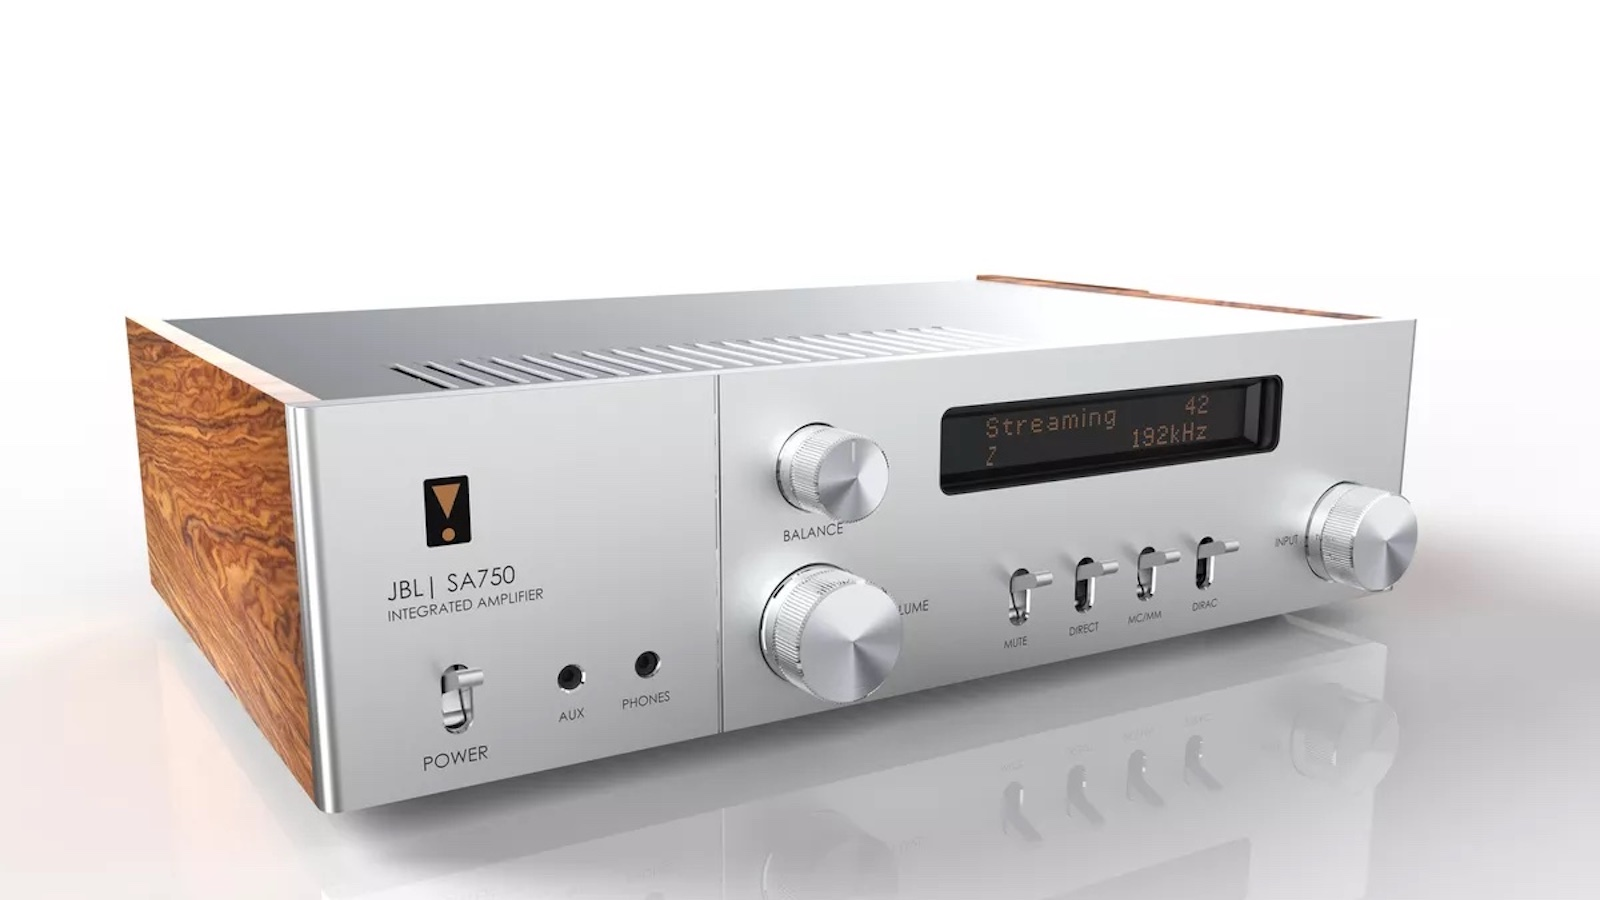 JBL SA750 Integrated Amplifier has a retro-inspired milled-aluminum face panel